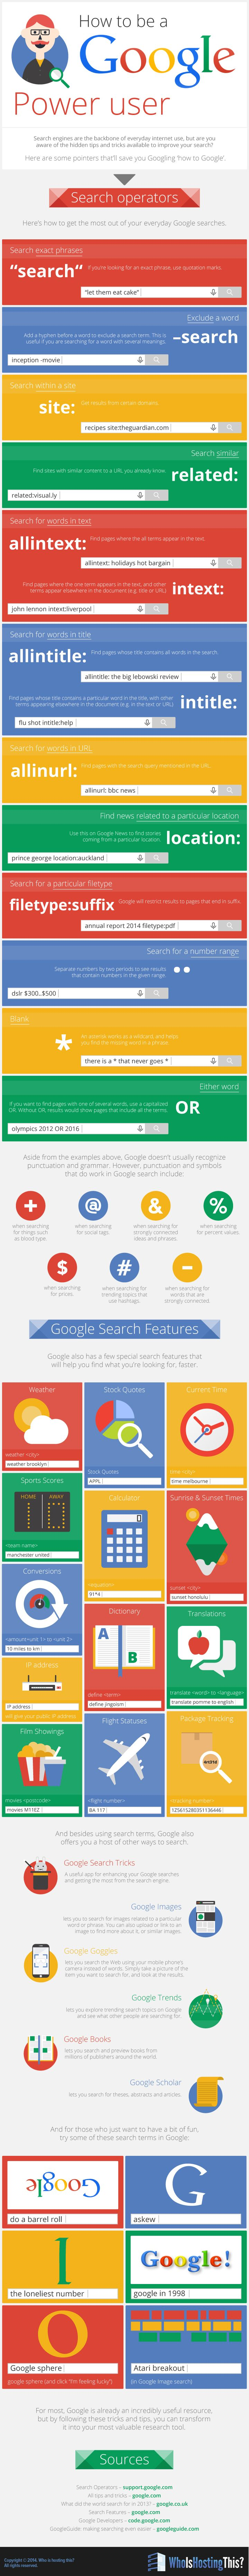 "Get Exactly What You Asked For On Google Using These Tips Infograpic - Some pointers that will save you from Googling 'how to Google."" - Writing on ADD freeSources: https://www.pinterest.com/addfreesources/writing/"